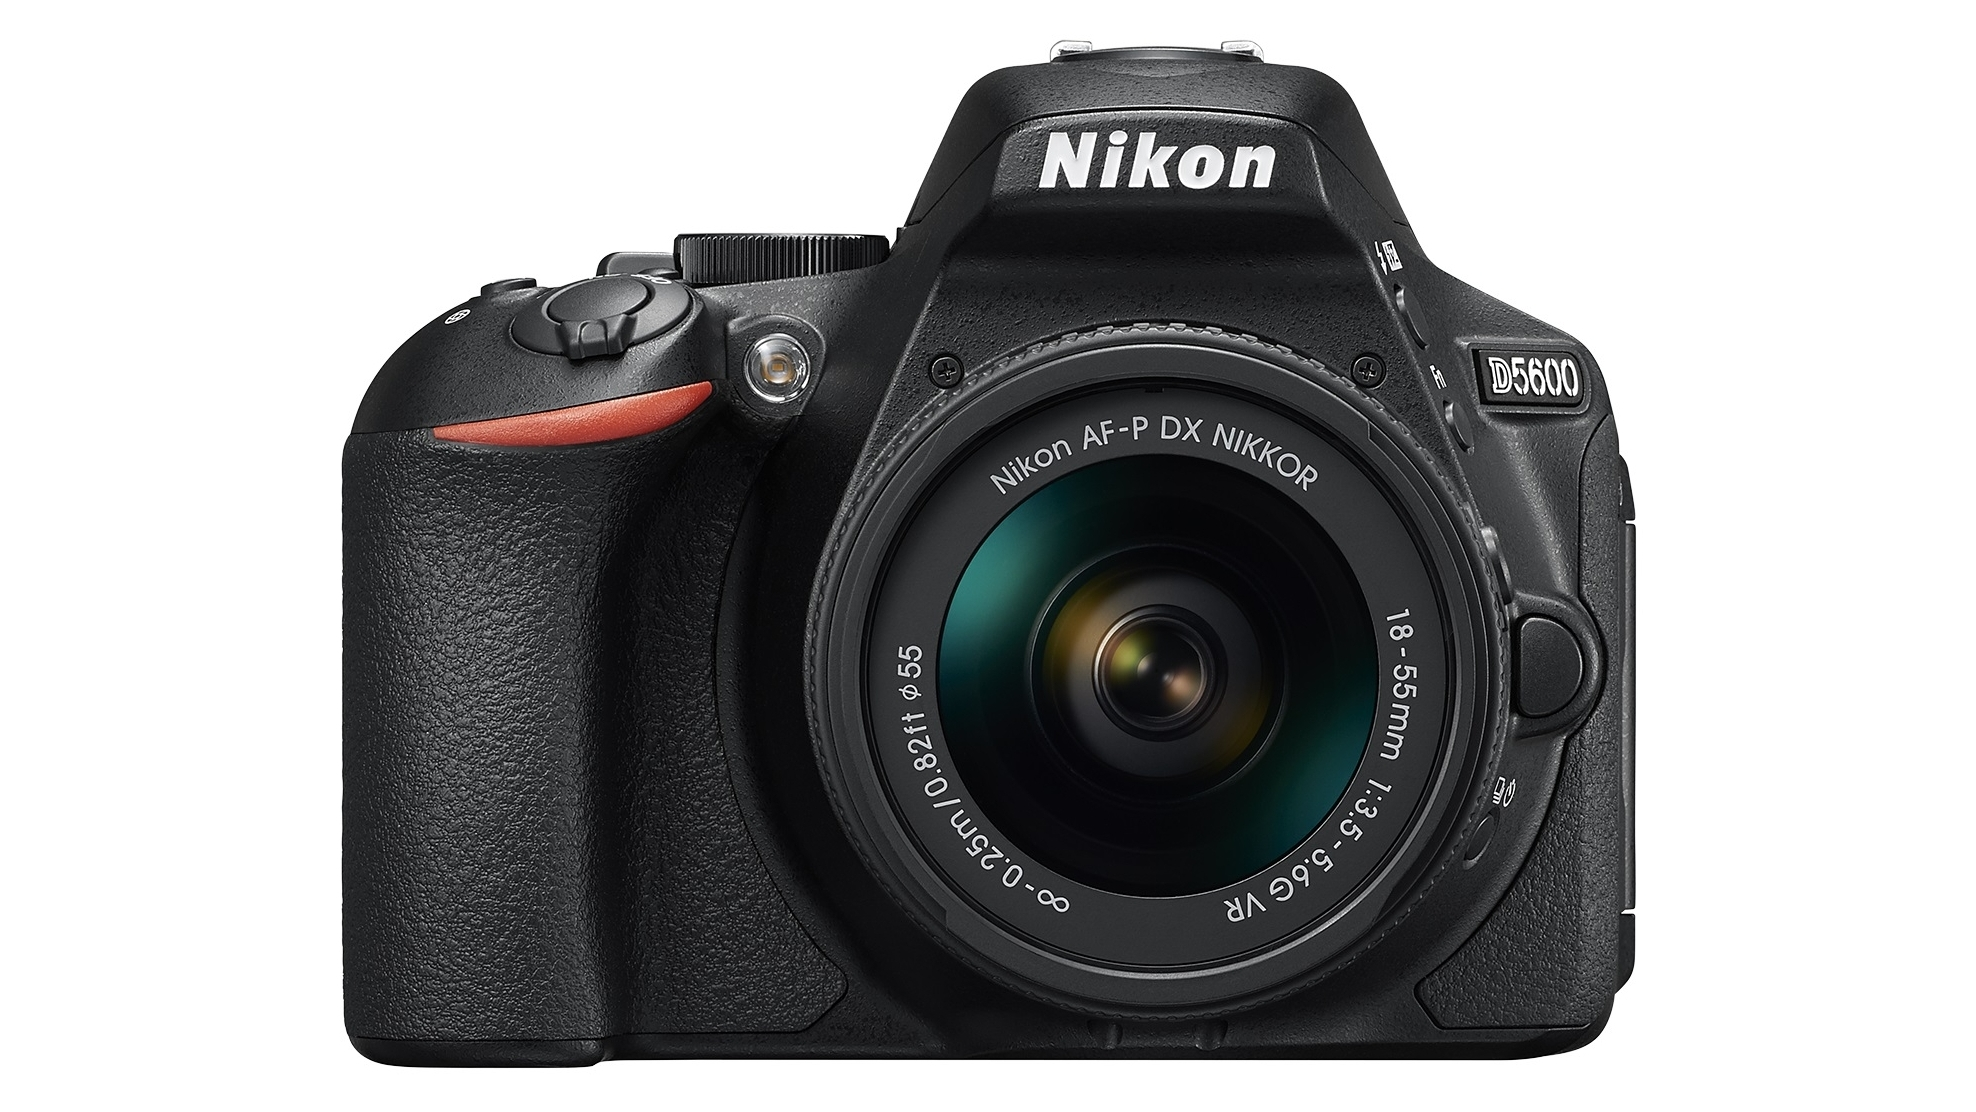 Nikon D5600 DSLR Camera with 18-55mm Lens Kit